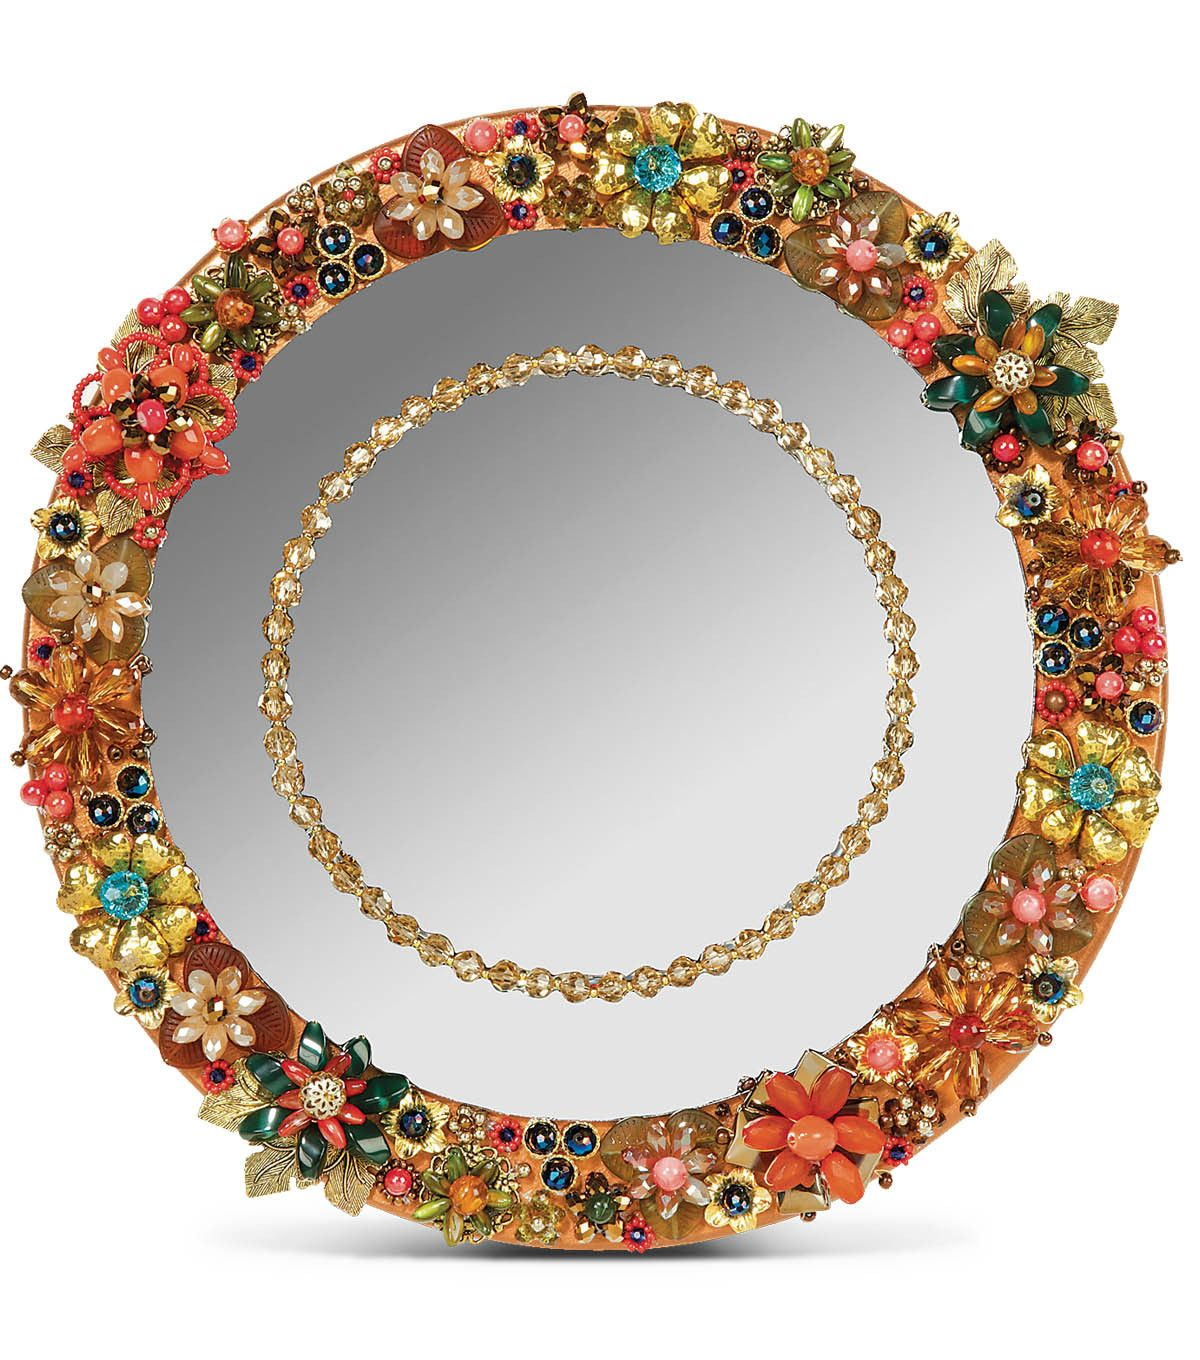 love this #diy jeweled mirror! would make beautiful wall decor in